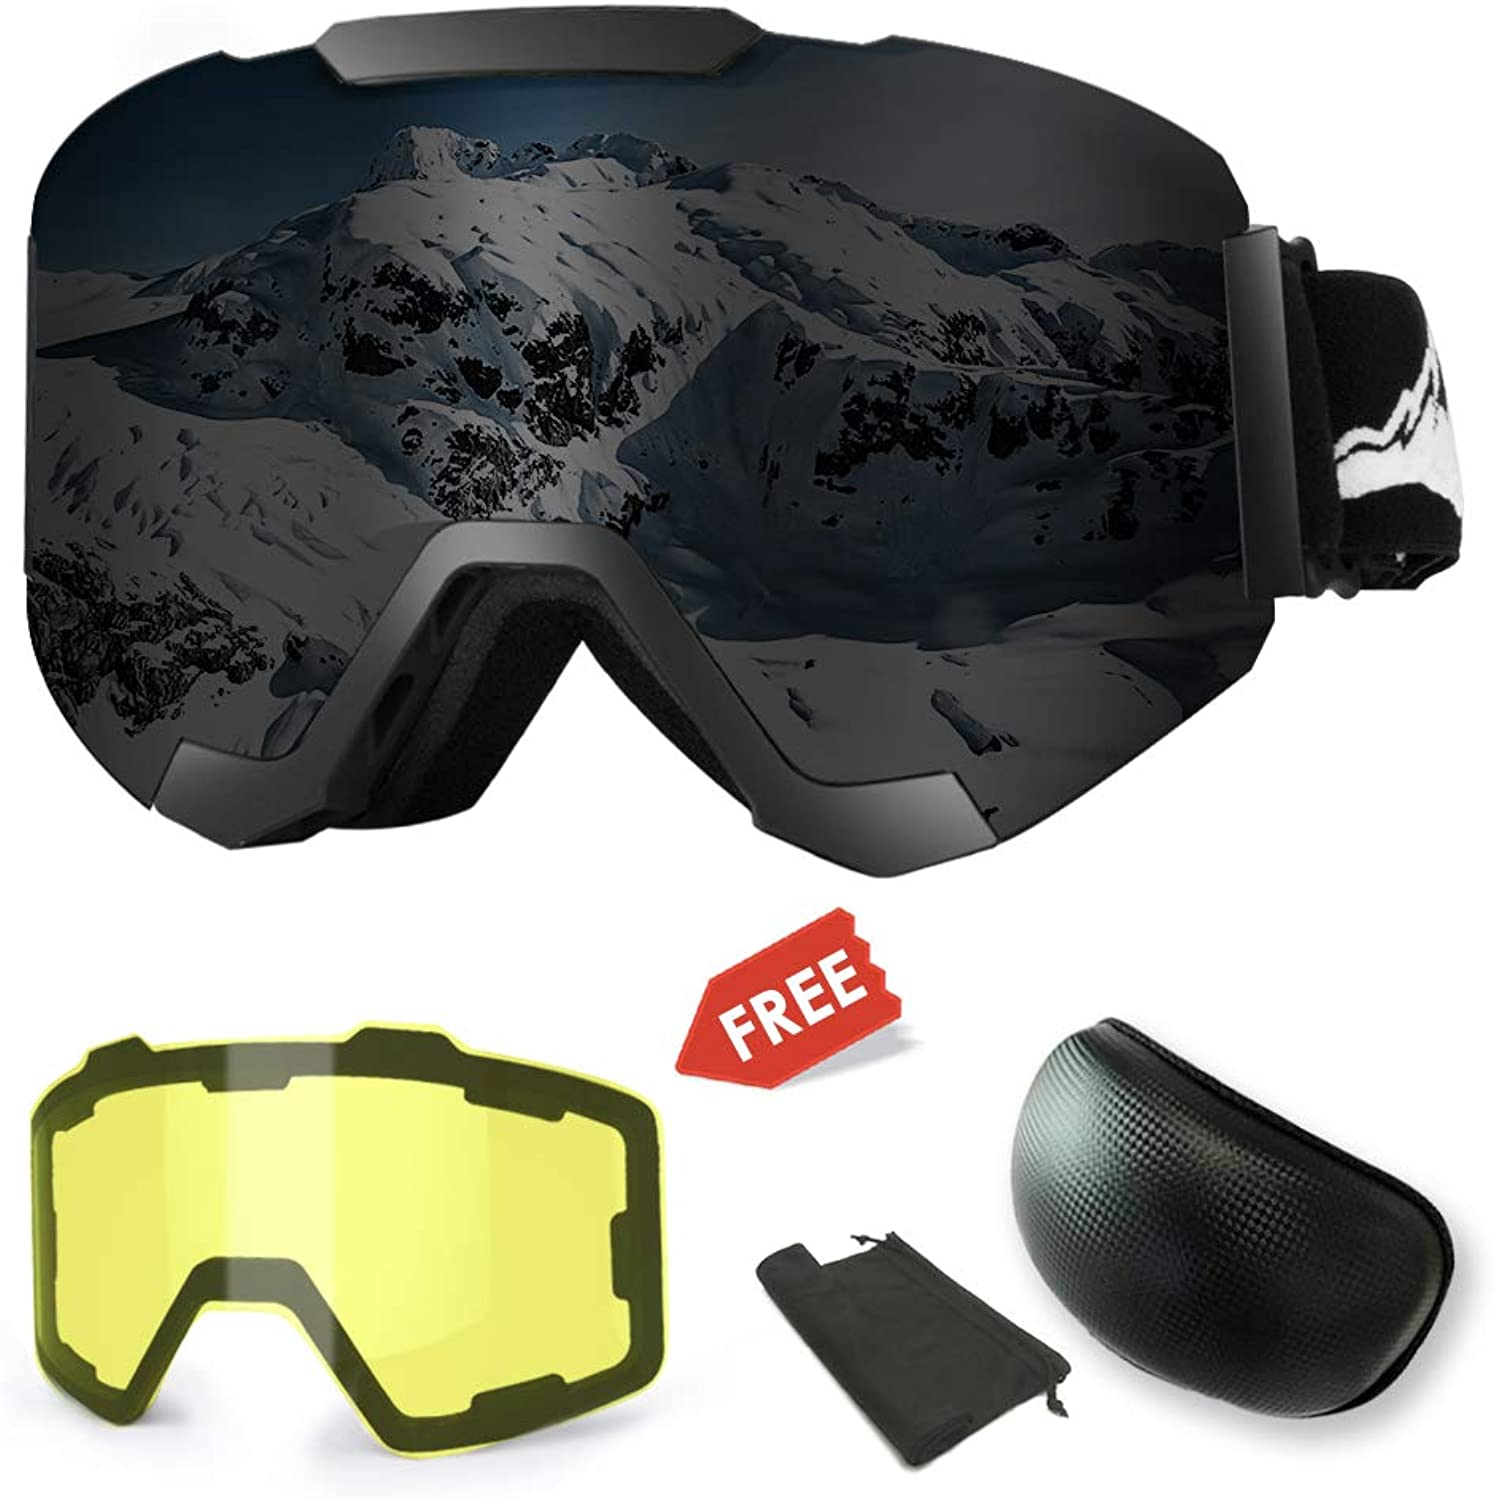 Extra Mile Ski Goggles AntiFog UV Predection Winter Snow Sports Snowboard Goggles with Interchangeable Spherical Dual Lens for Men Women & Youth Snowmobile Skiing Skating